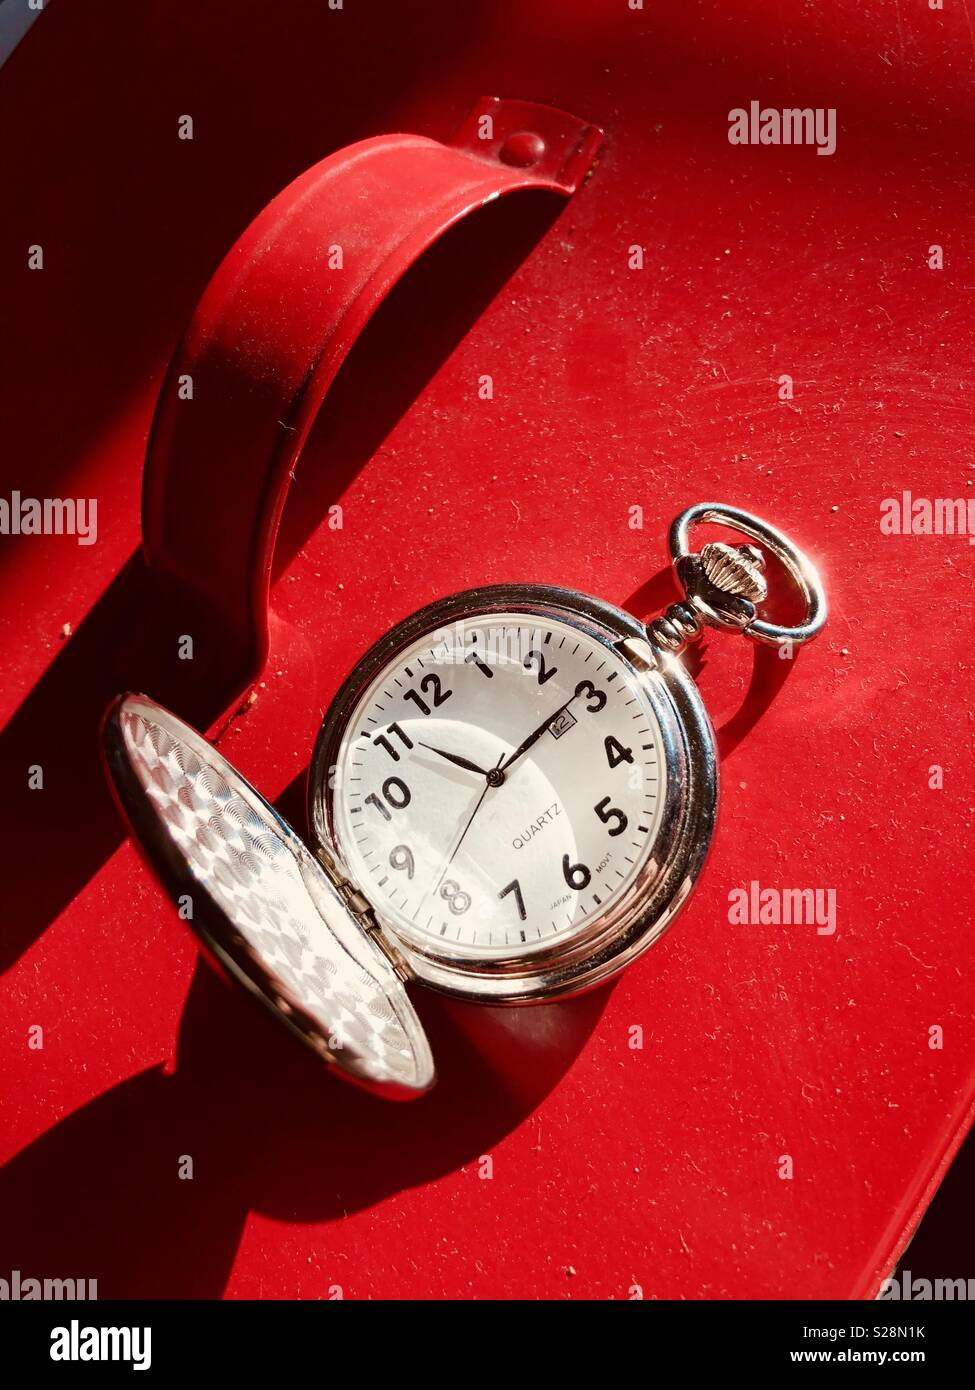 Do you have the time? - Stock Image